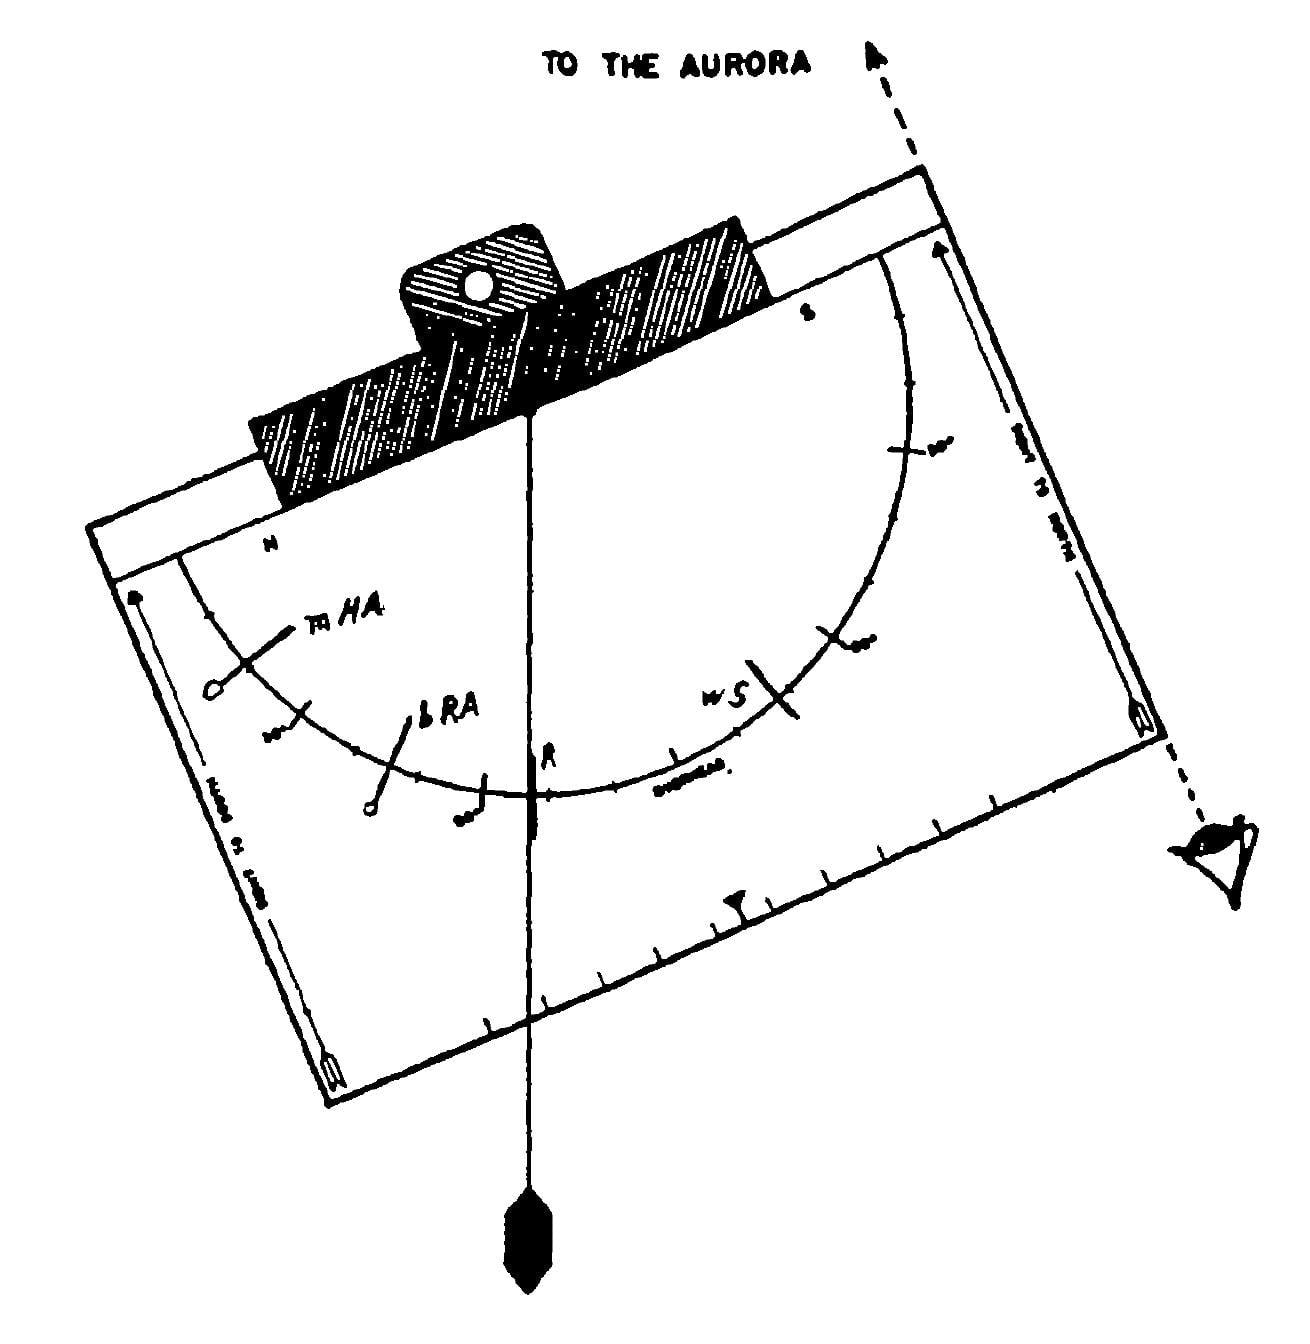 back of the form acted as an azimuth measuring device